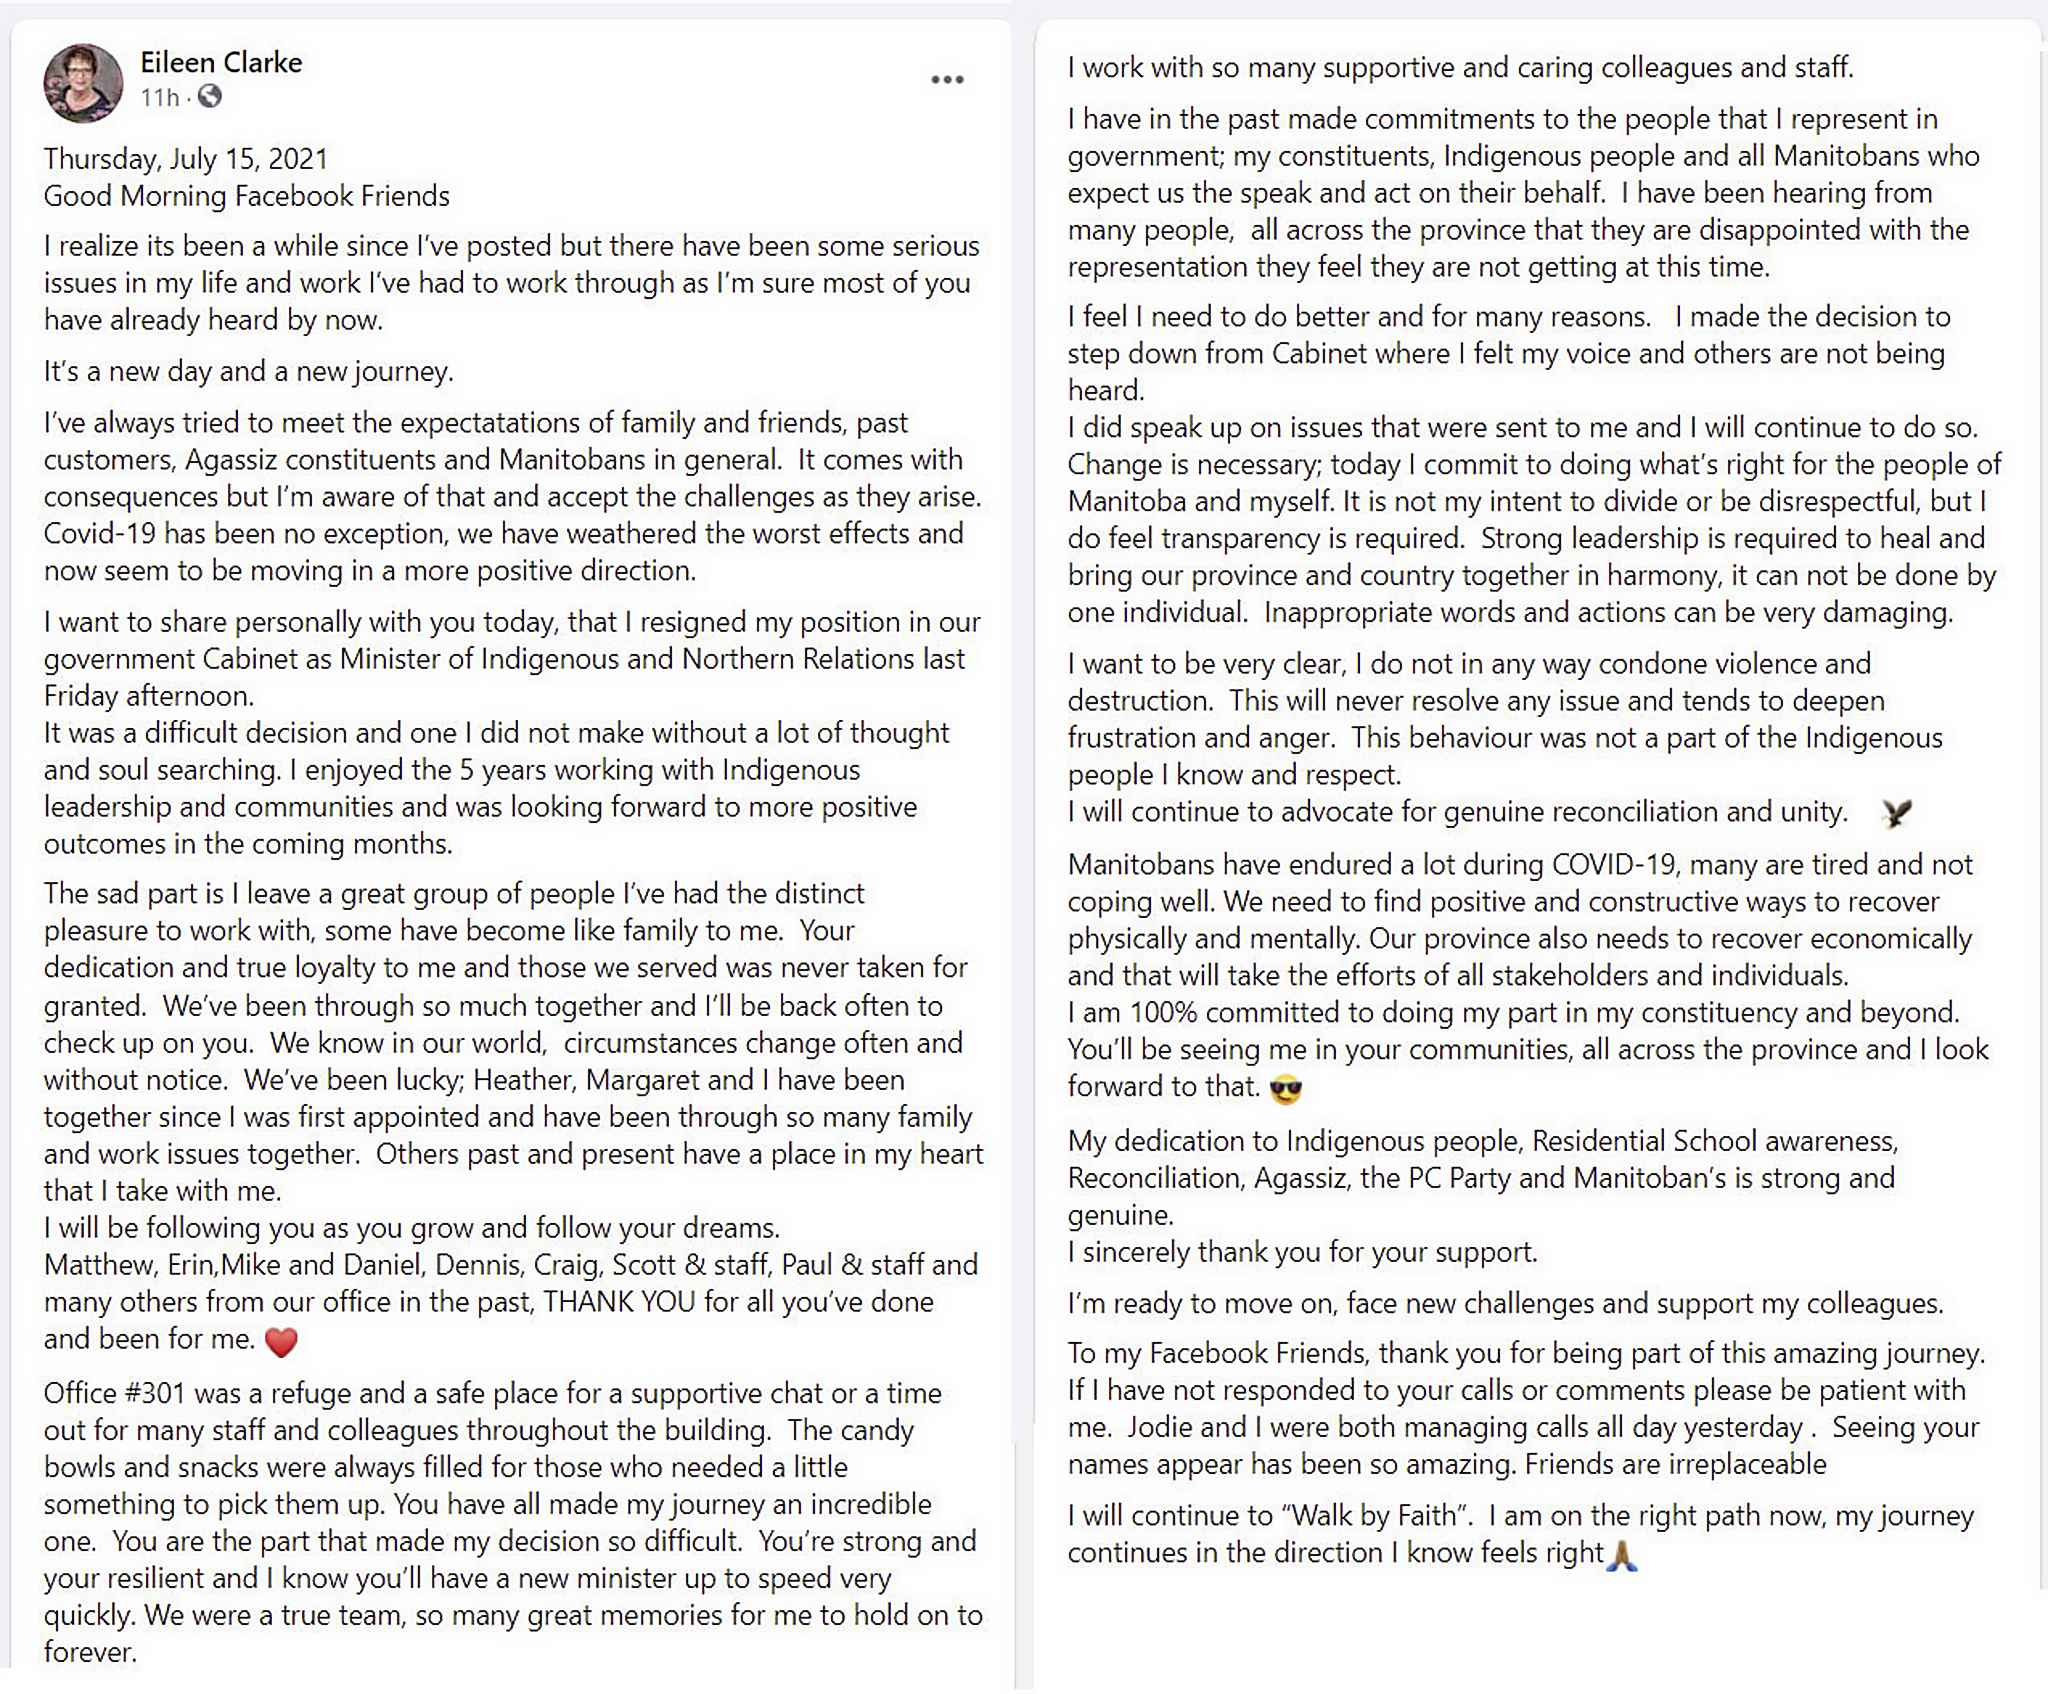 A screen capture of the post Eileen Clarke wrote on her Facebook page Thursday morning.